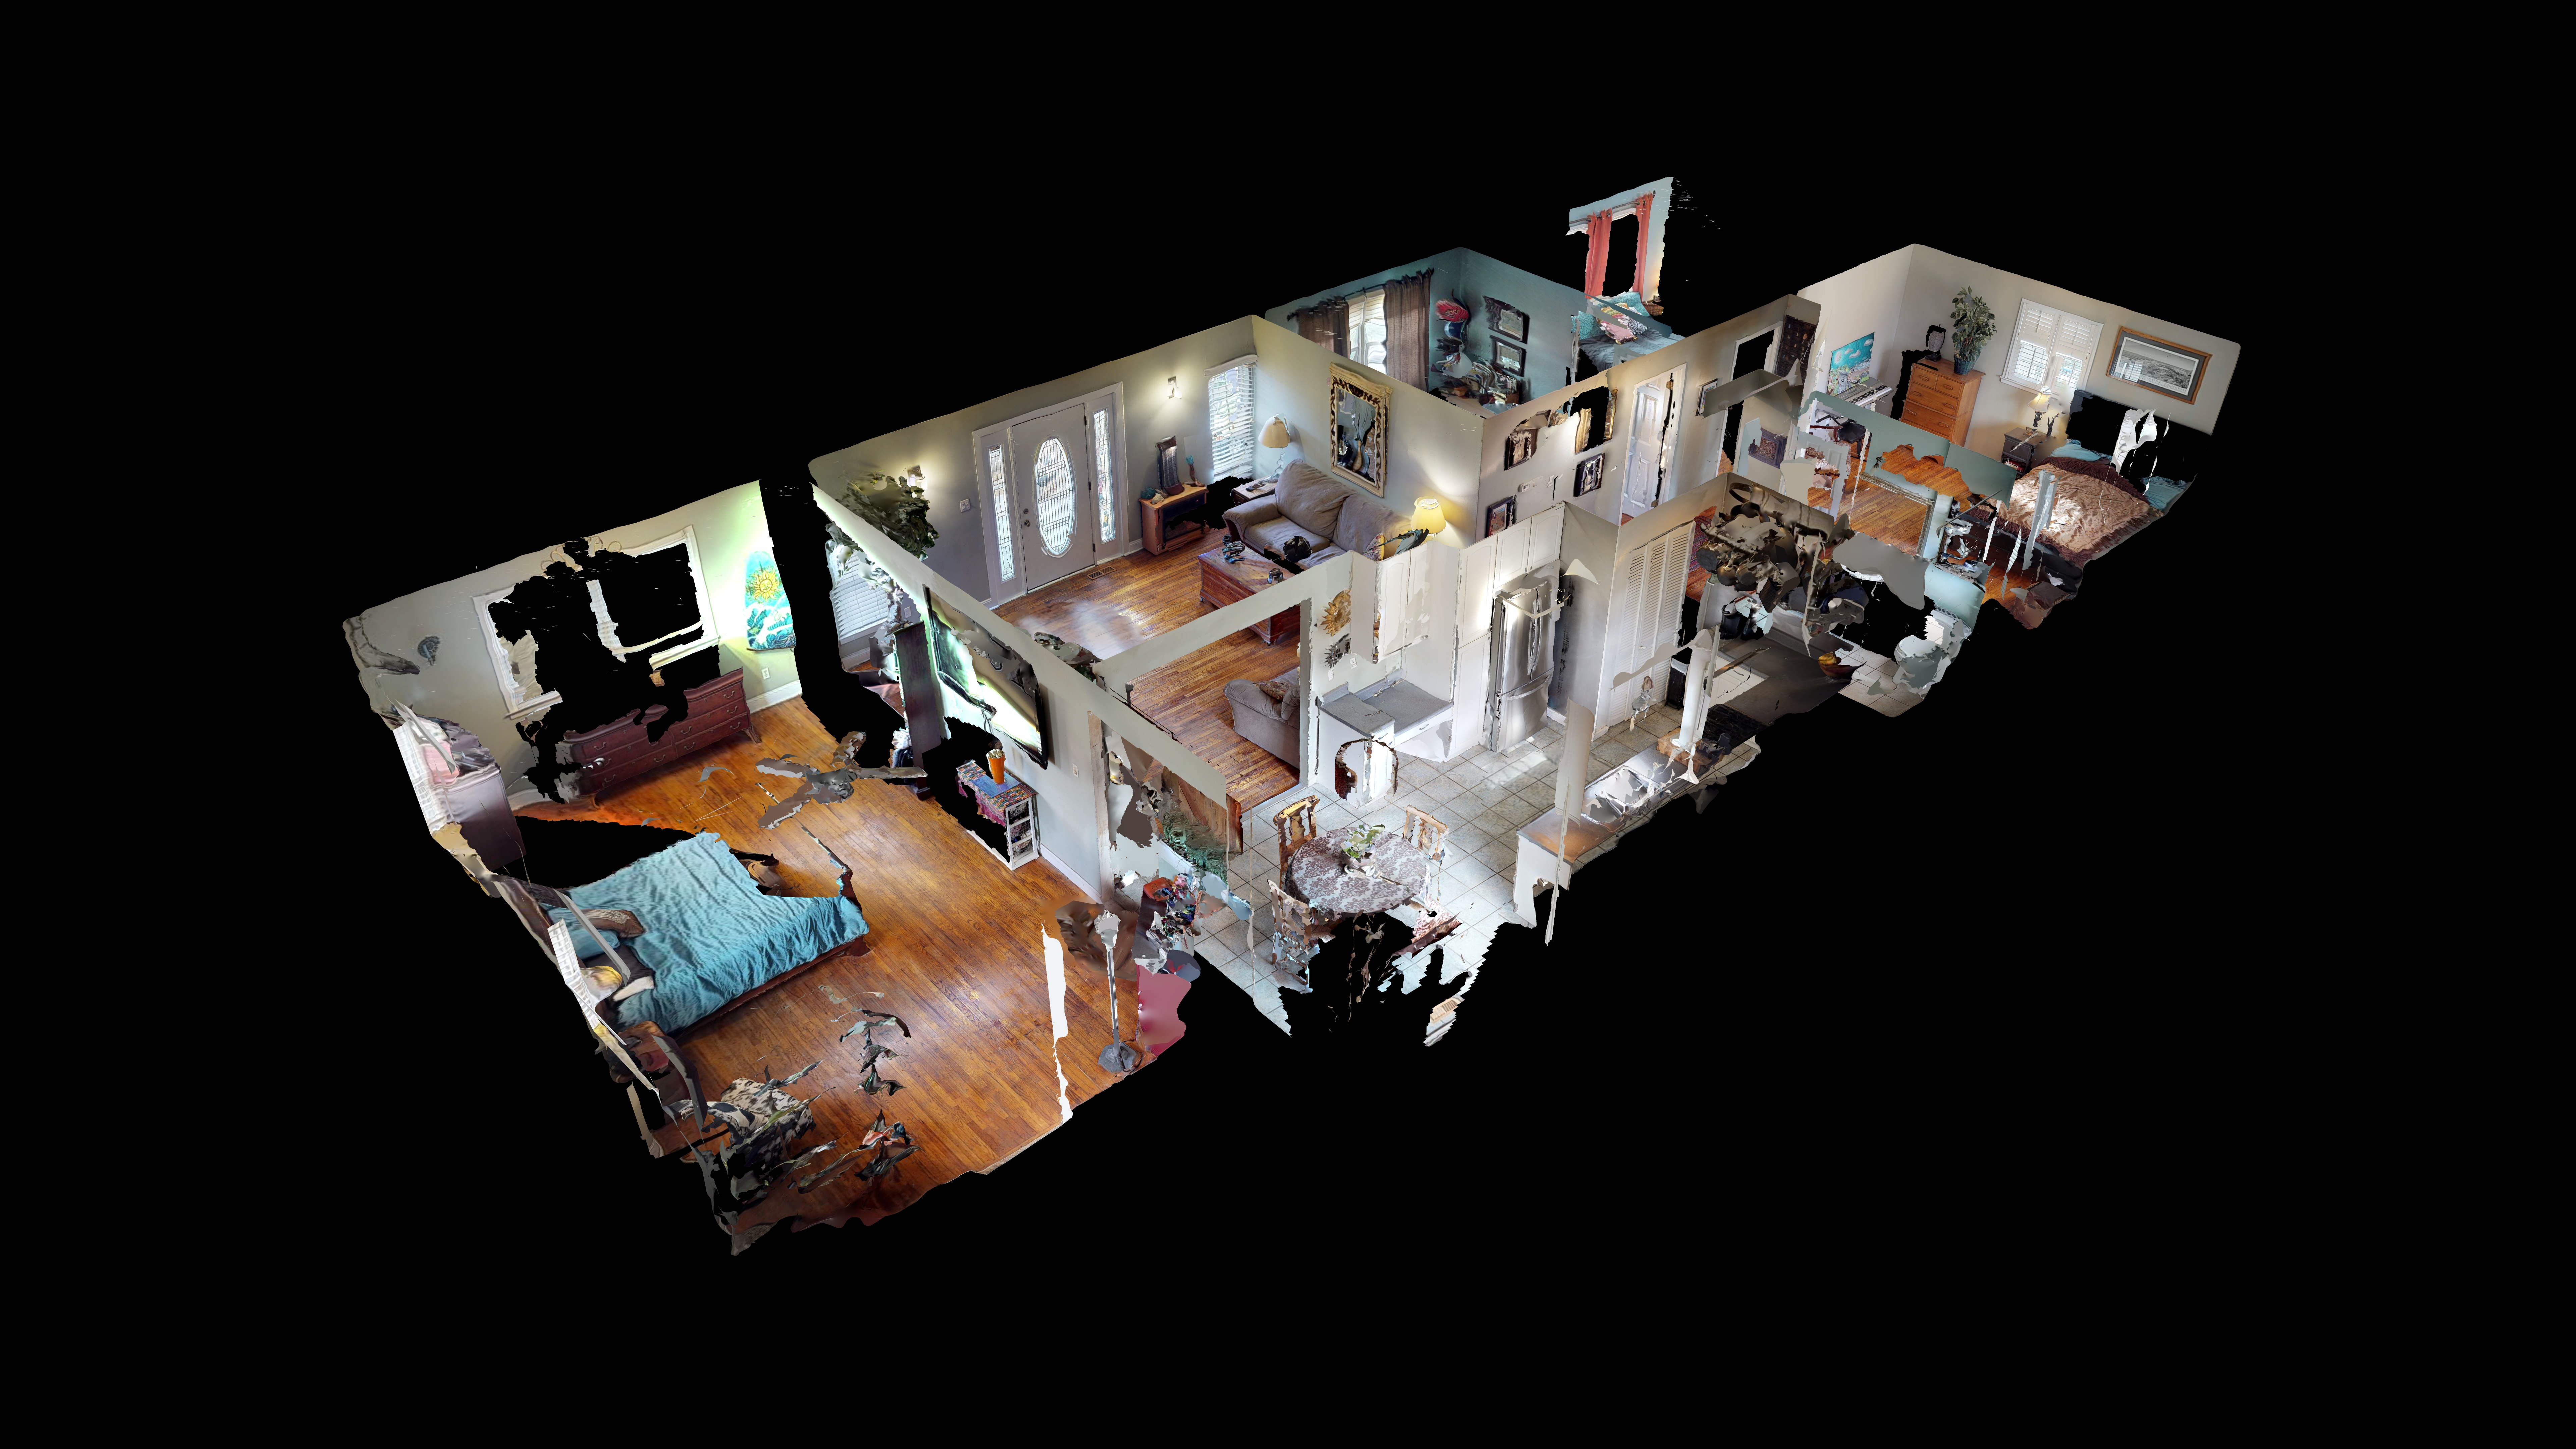 2222 Zion Road in 3D